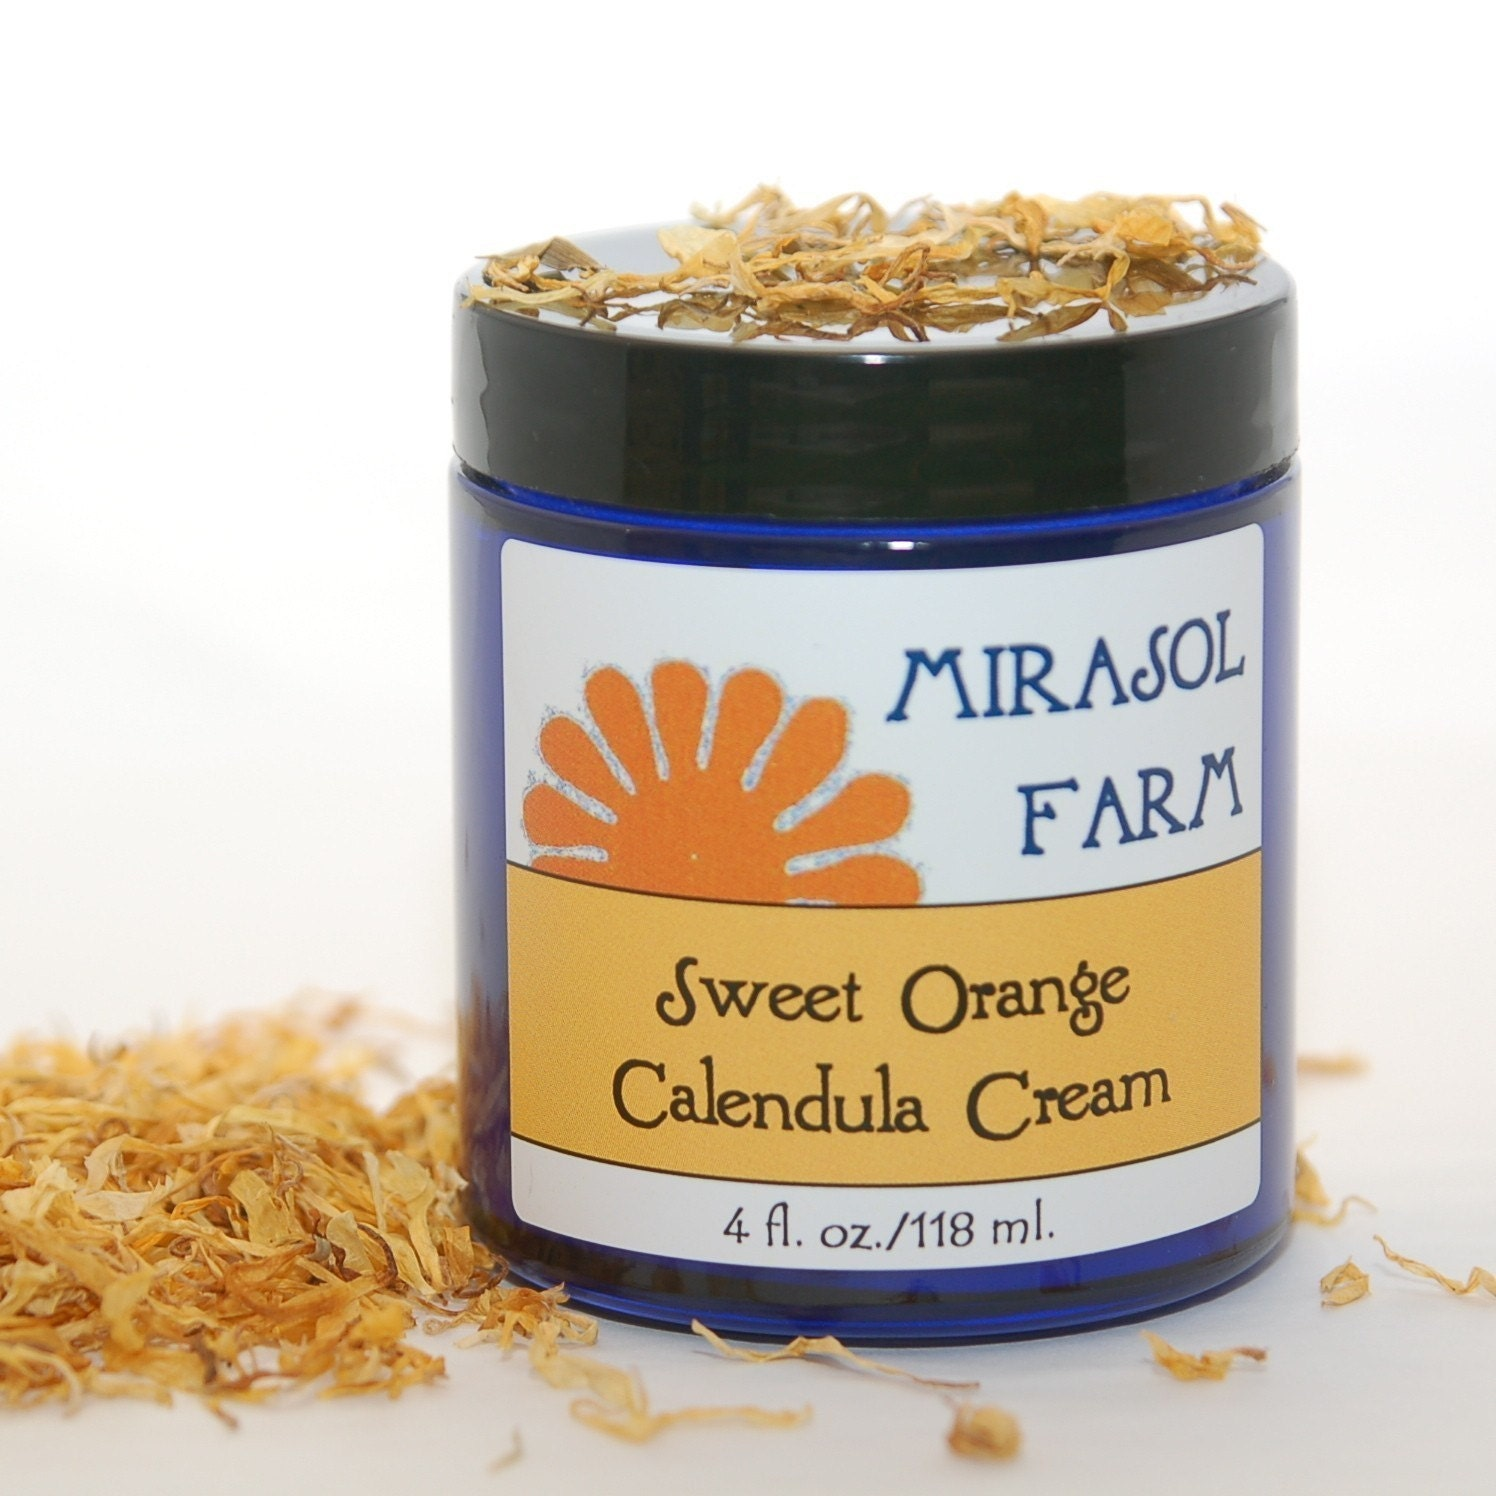 Sweet Orange Calendula Cream with organic oils by MirasolFarm